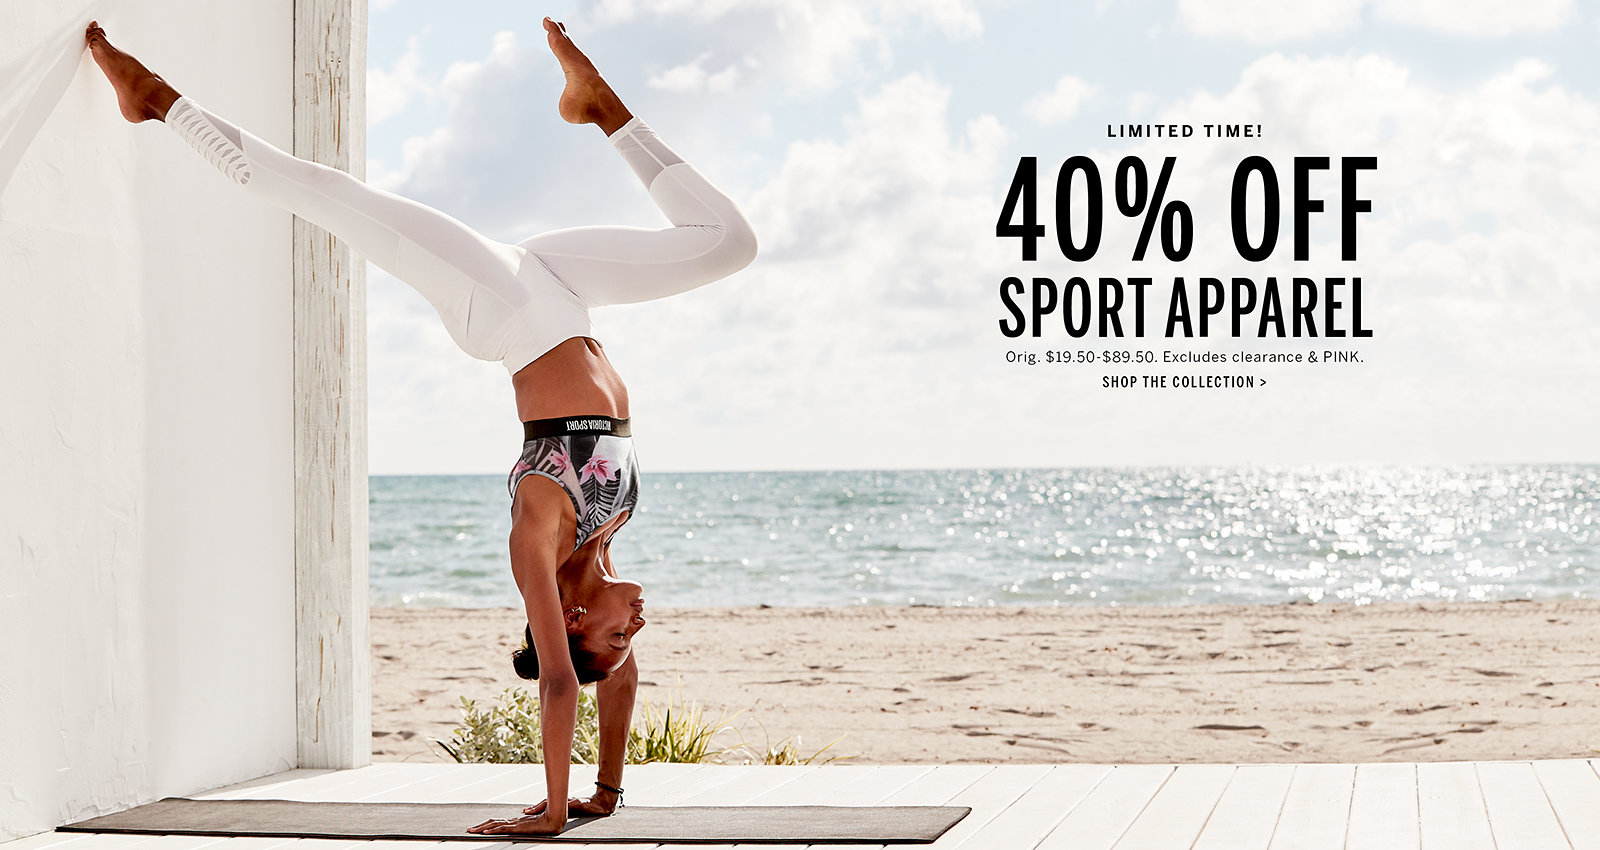 051518-sport-apparel-40-off.jpg